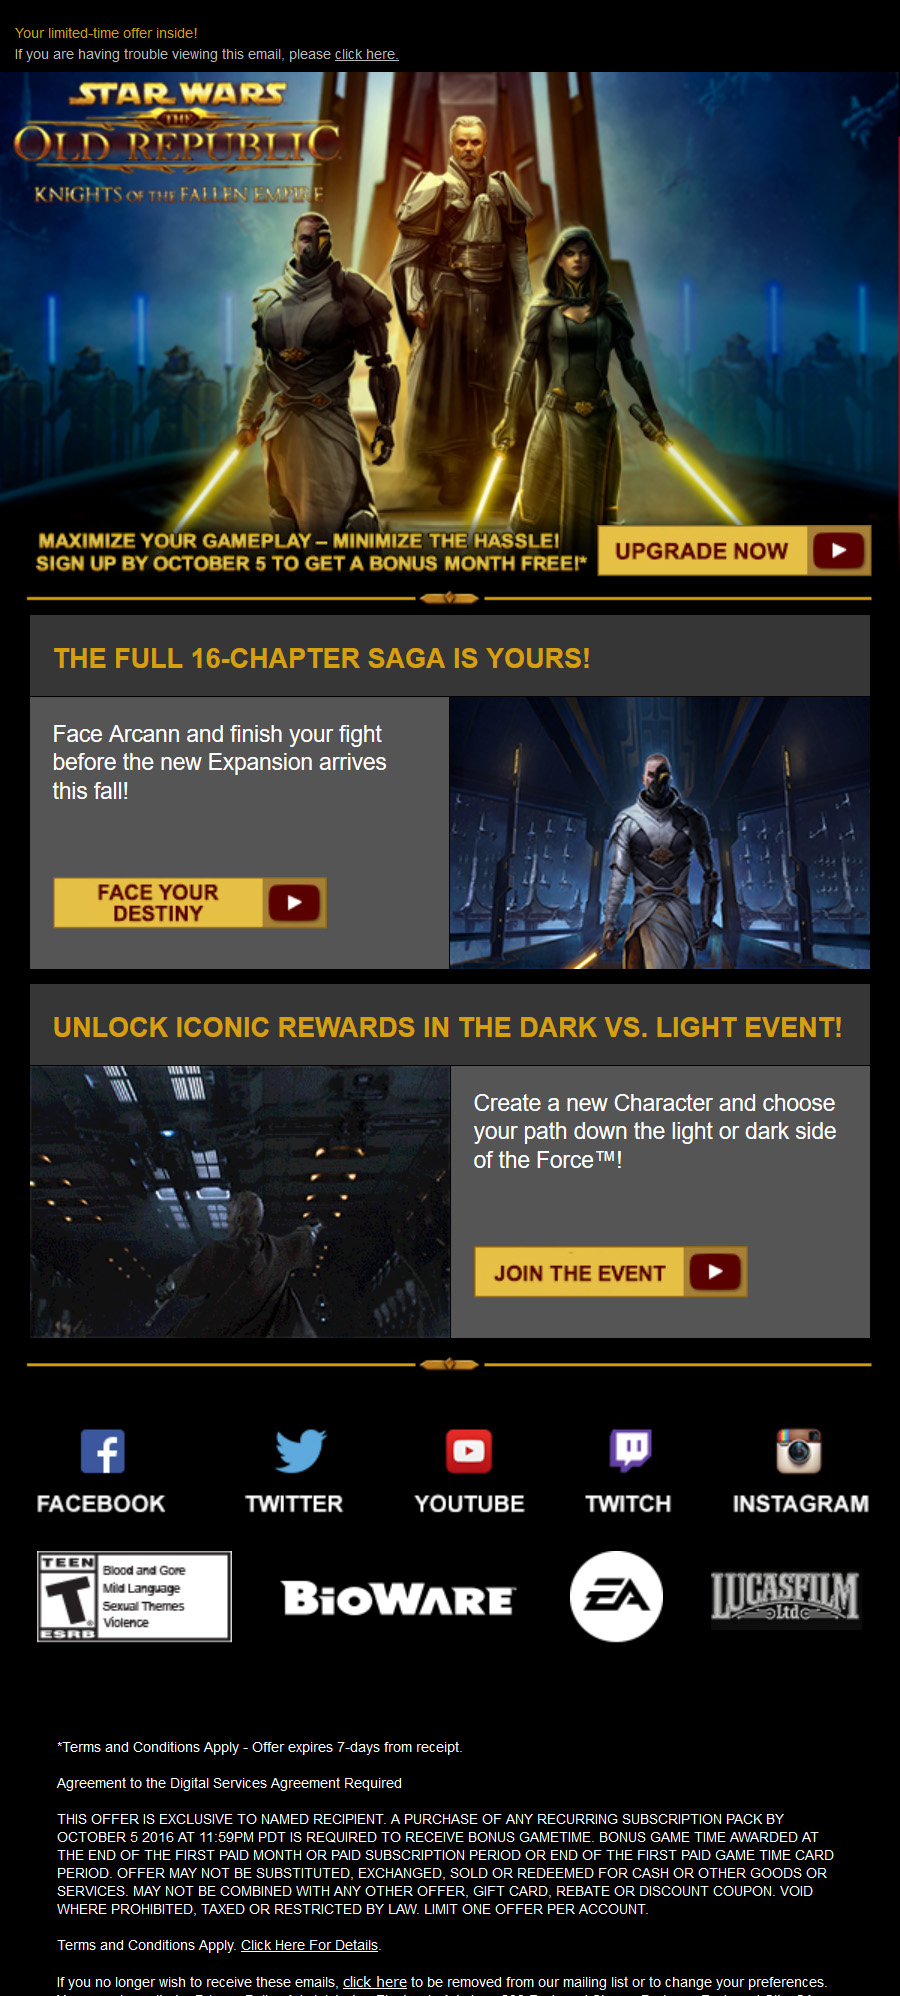 new-swtor-email-offer-being-sent-out-free-month-when-you-subscribe